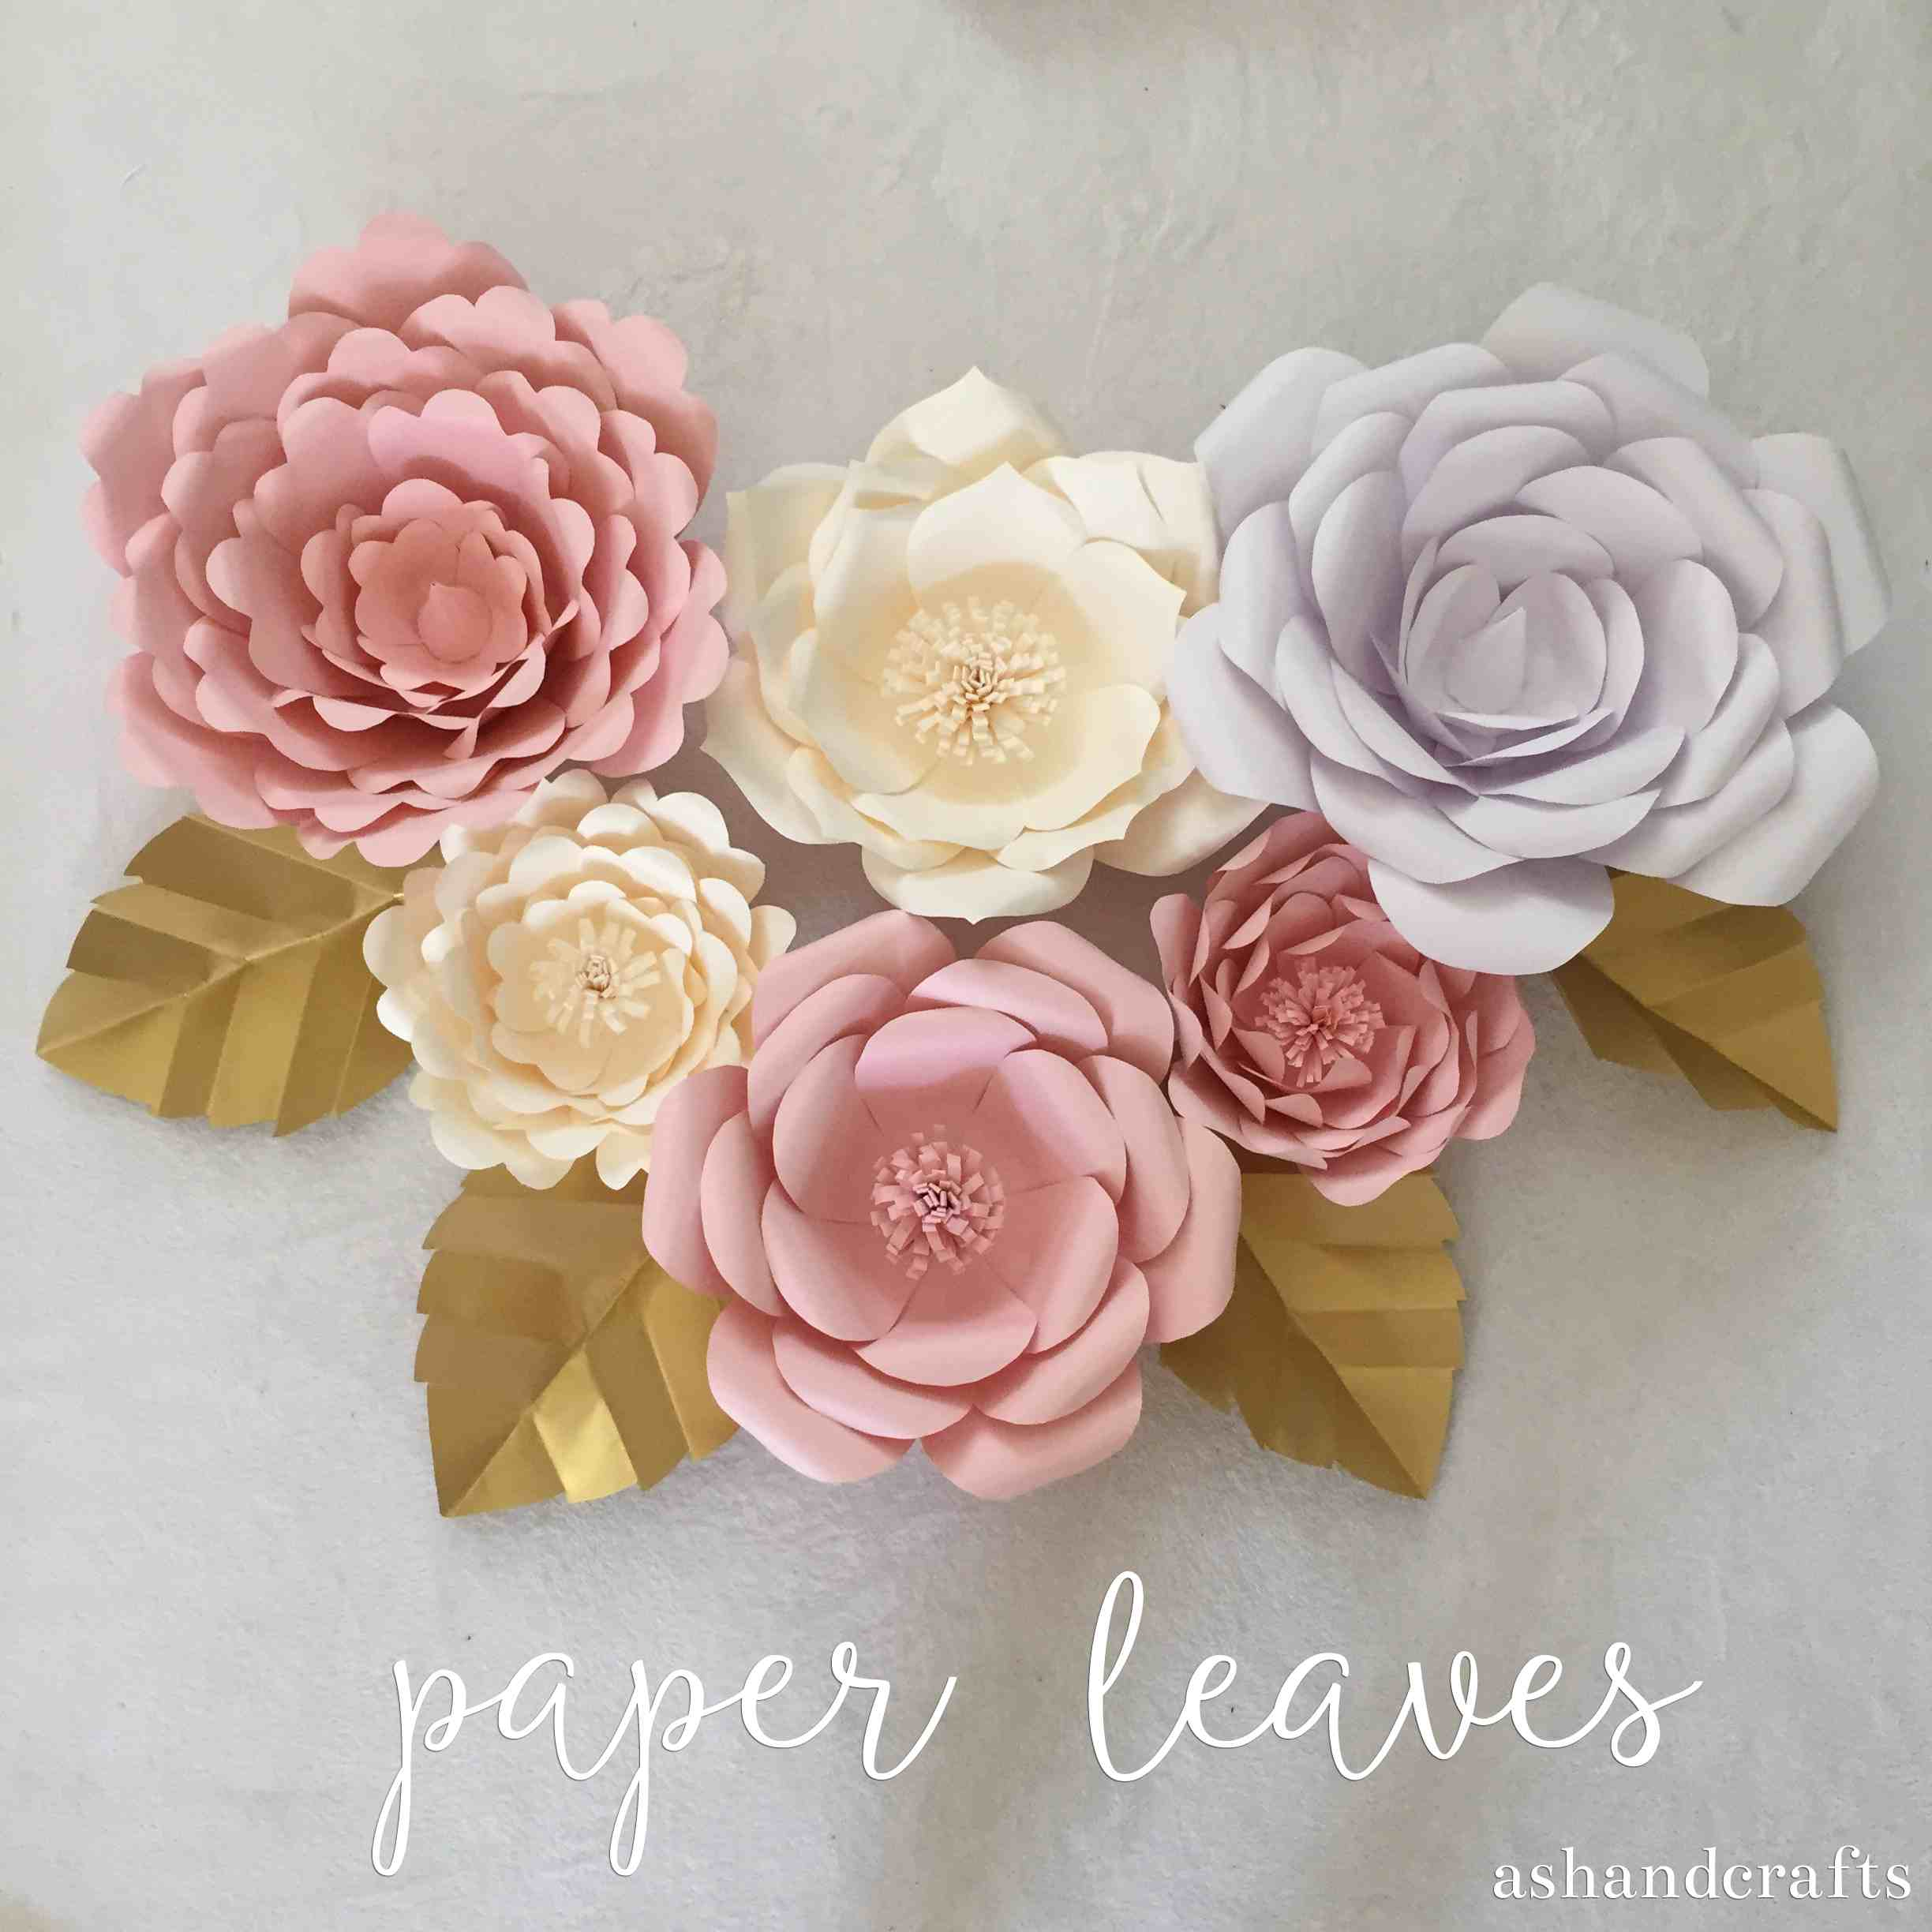 28 fun and easy to make paper flower projects you can make mightylinksfo